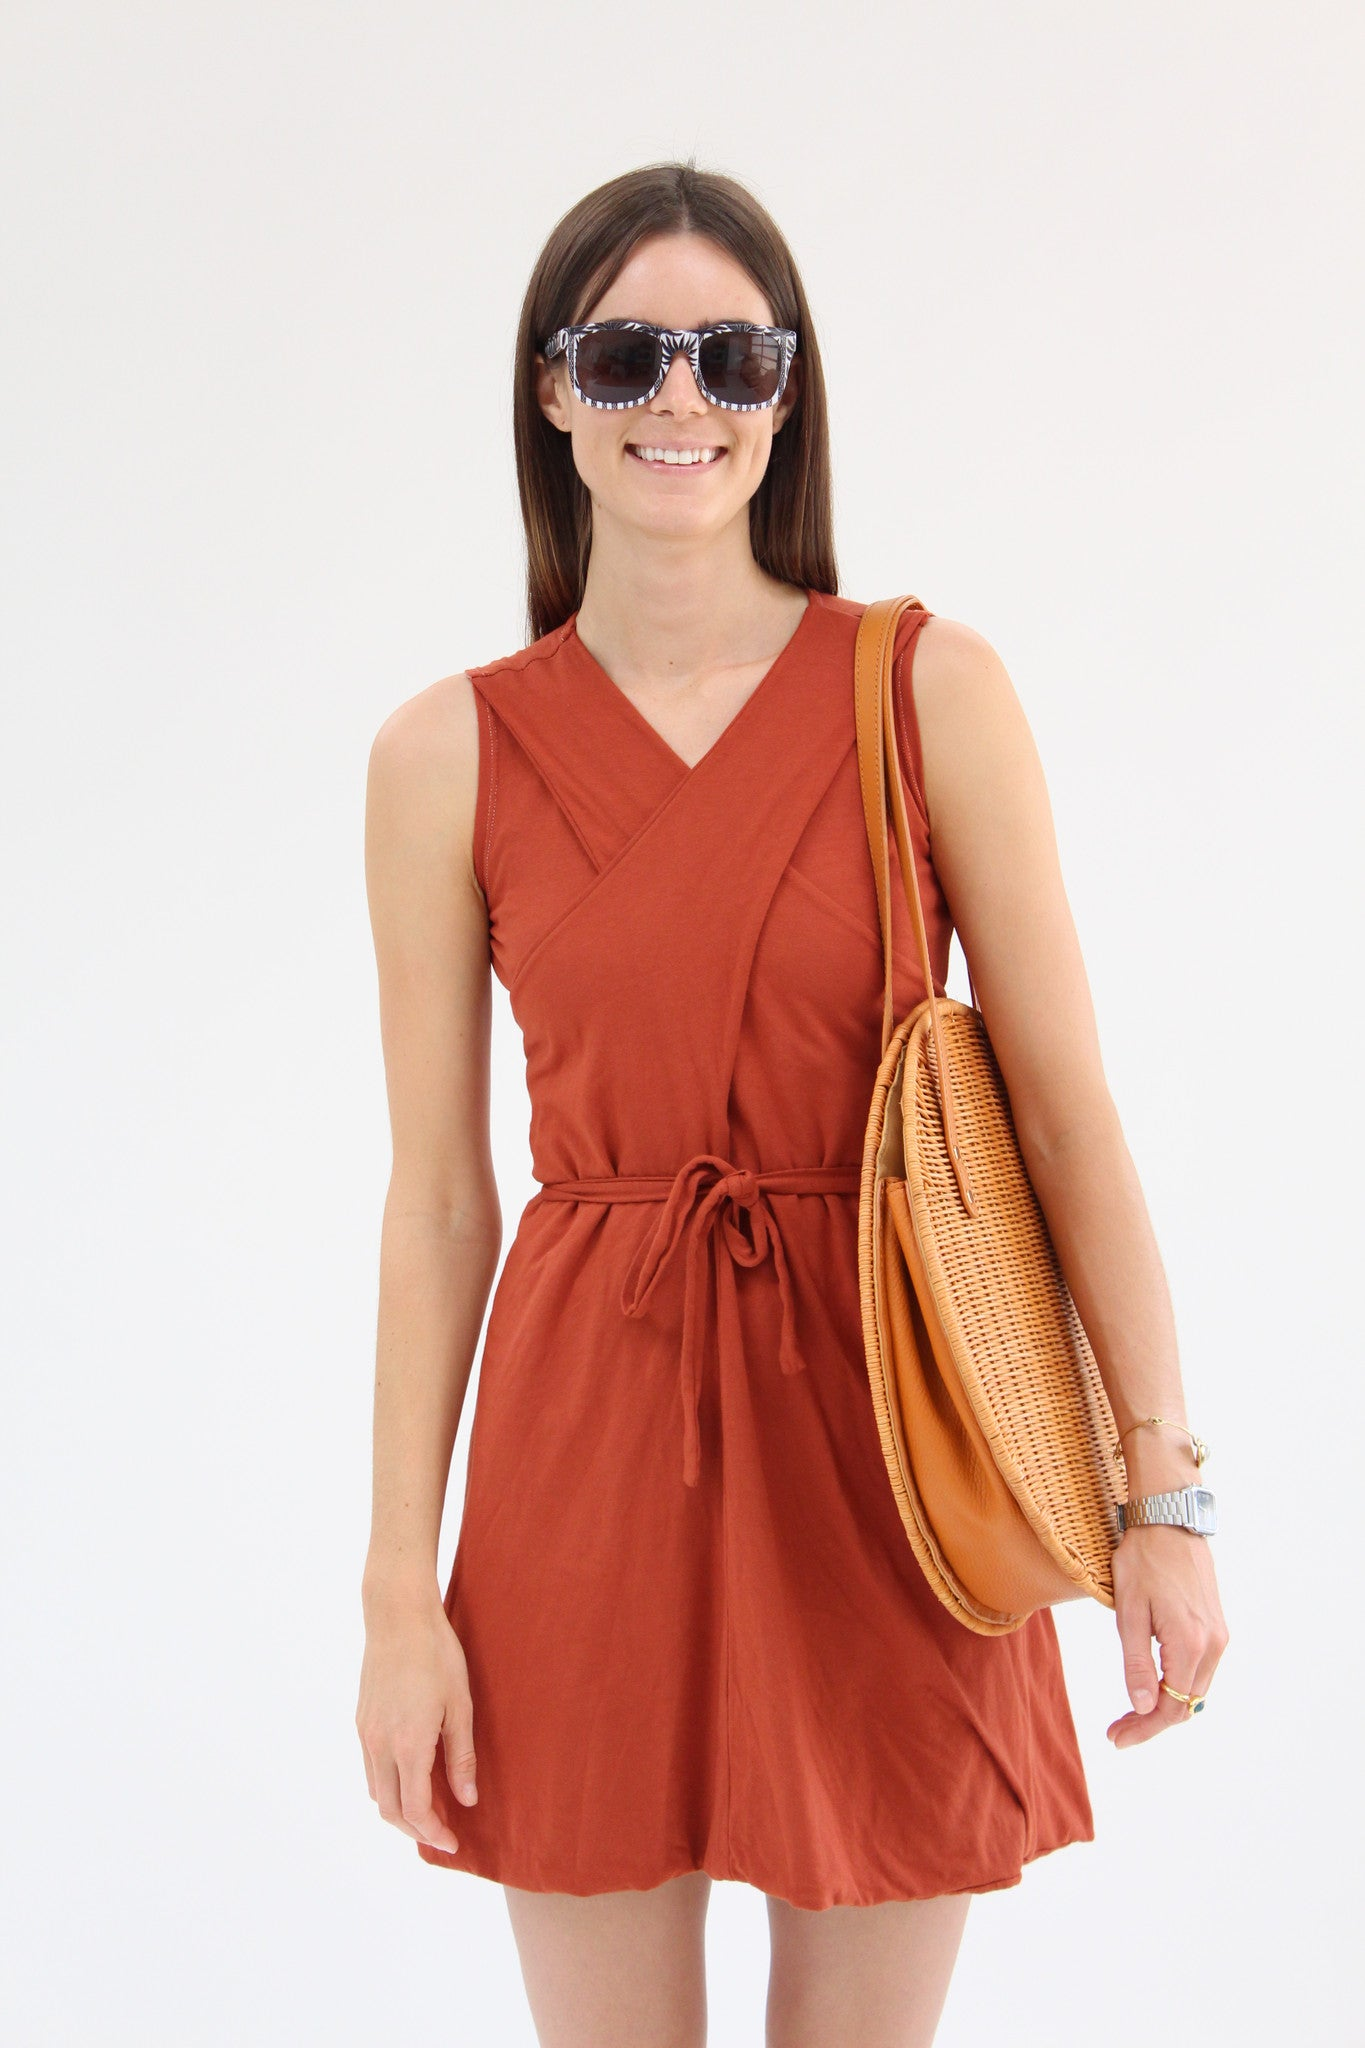 Lina Rennell Criss Cross Jersey Wrap Dress Terra Cotta / BEKLINA